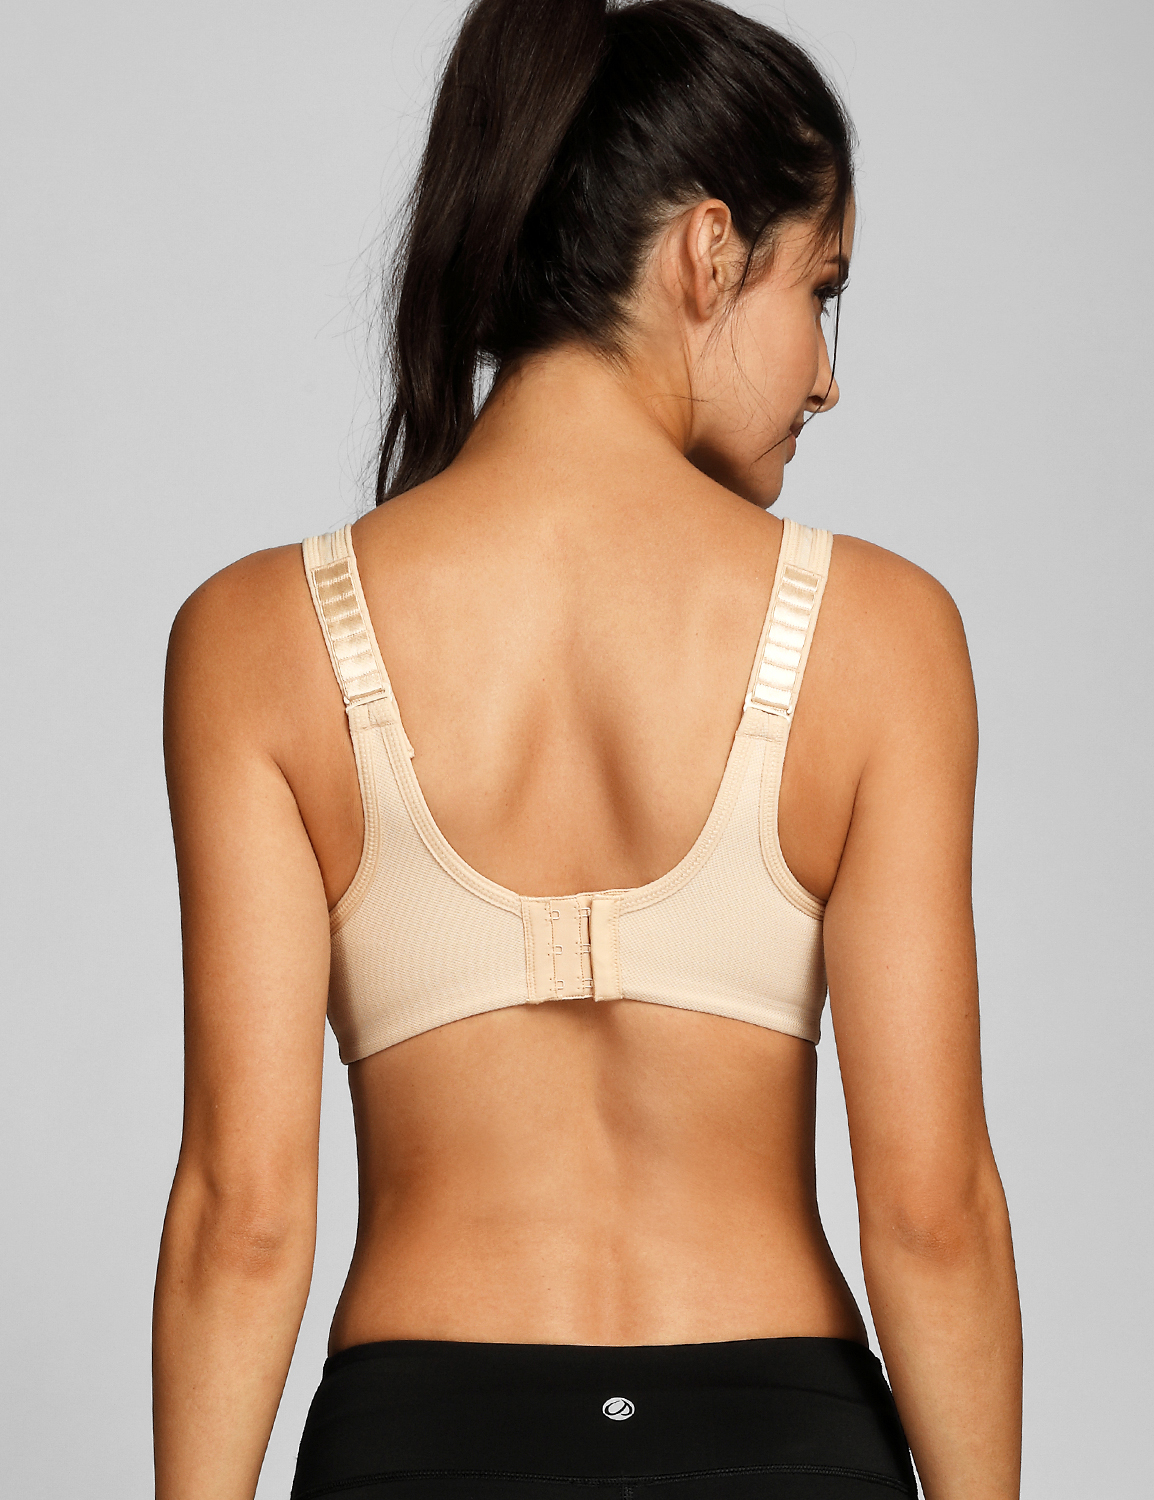 Women-039-s-Firm-Support-Contour-High-Impact-Underwire-Sports-Bra thumbnail 17